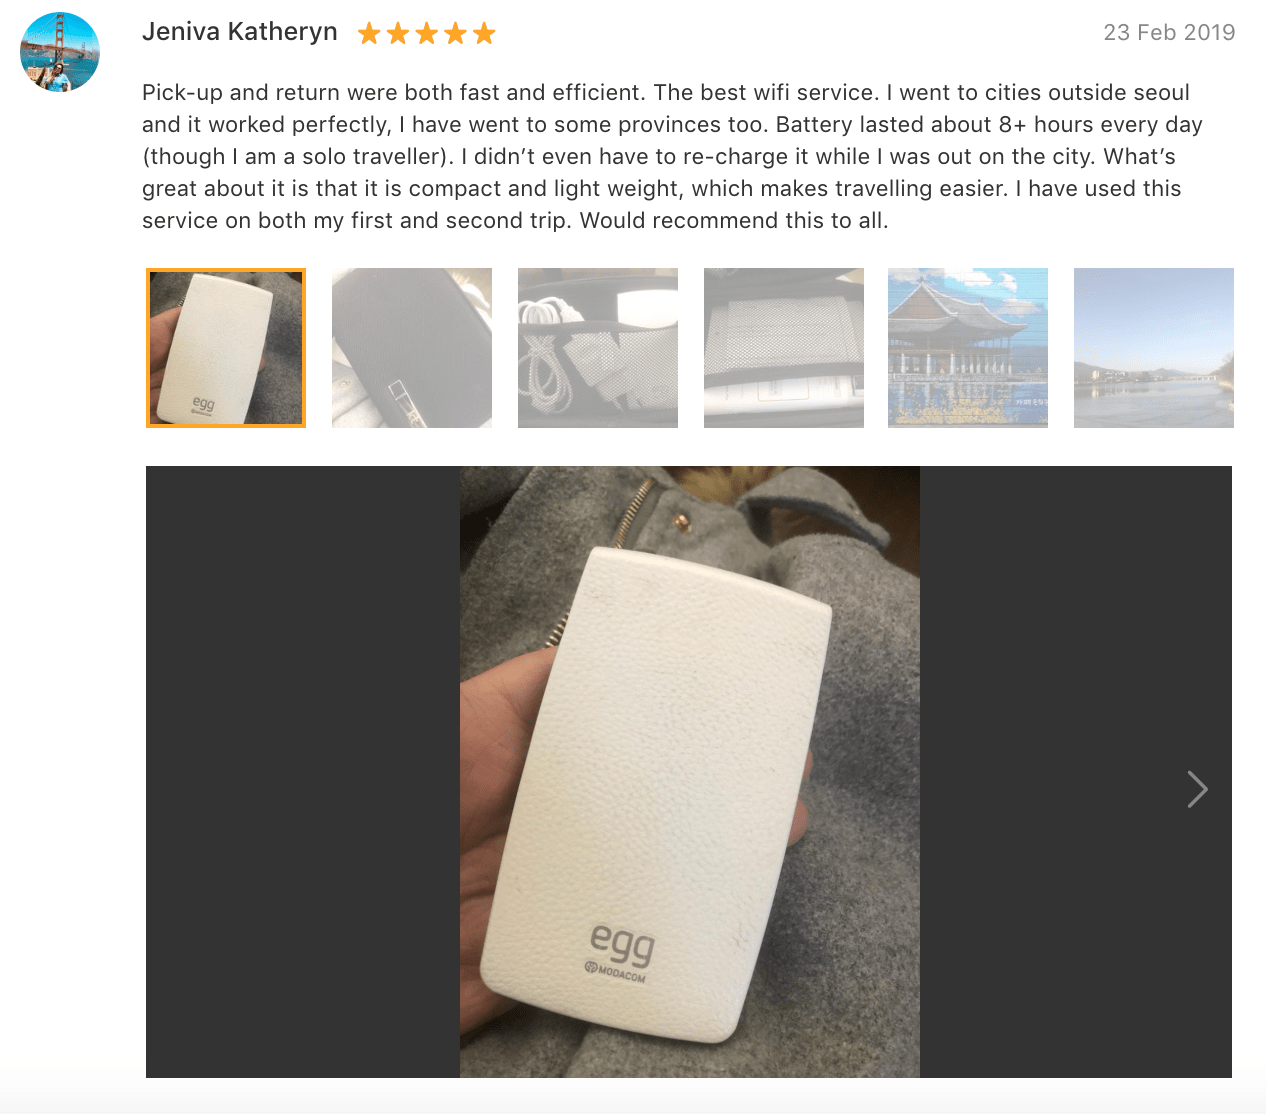 'Pick-up and return were both fast and efficient. The best wifi service. I went to cities outside seoul and it worked perfectly…Battery lasted about 8+ hours every day…' - 4G KT Olleh Pocket Wifi for Korea: Review